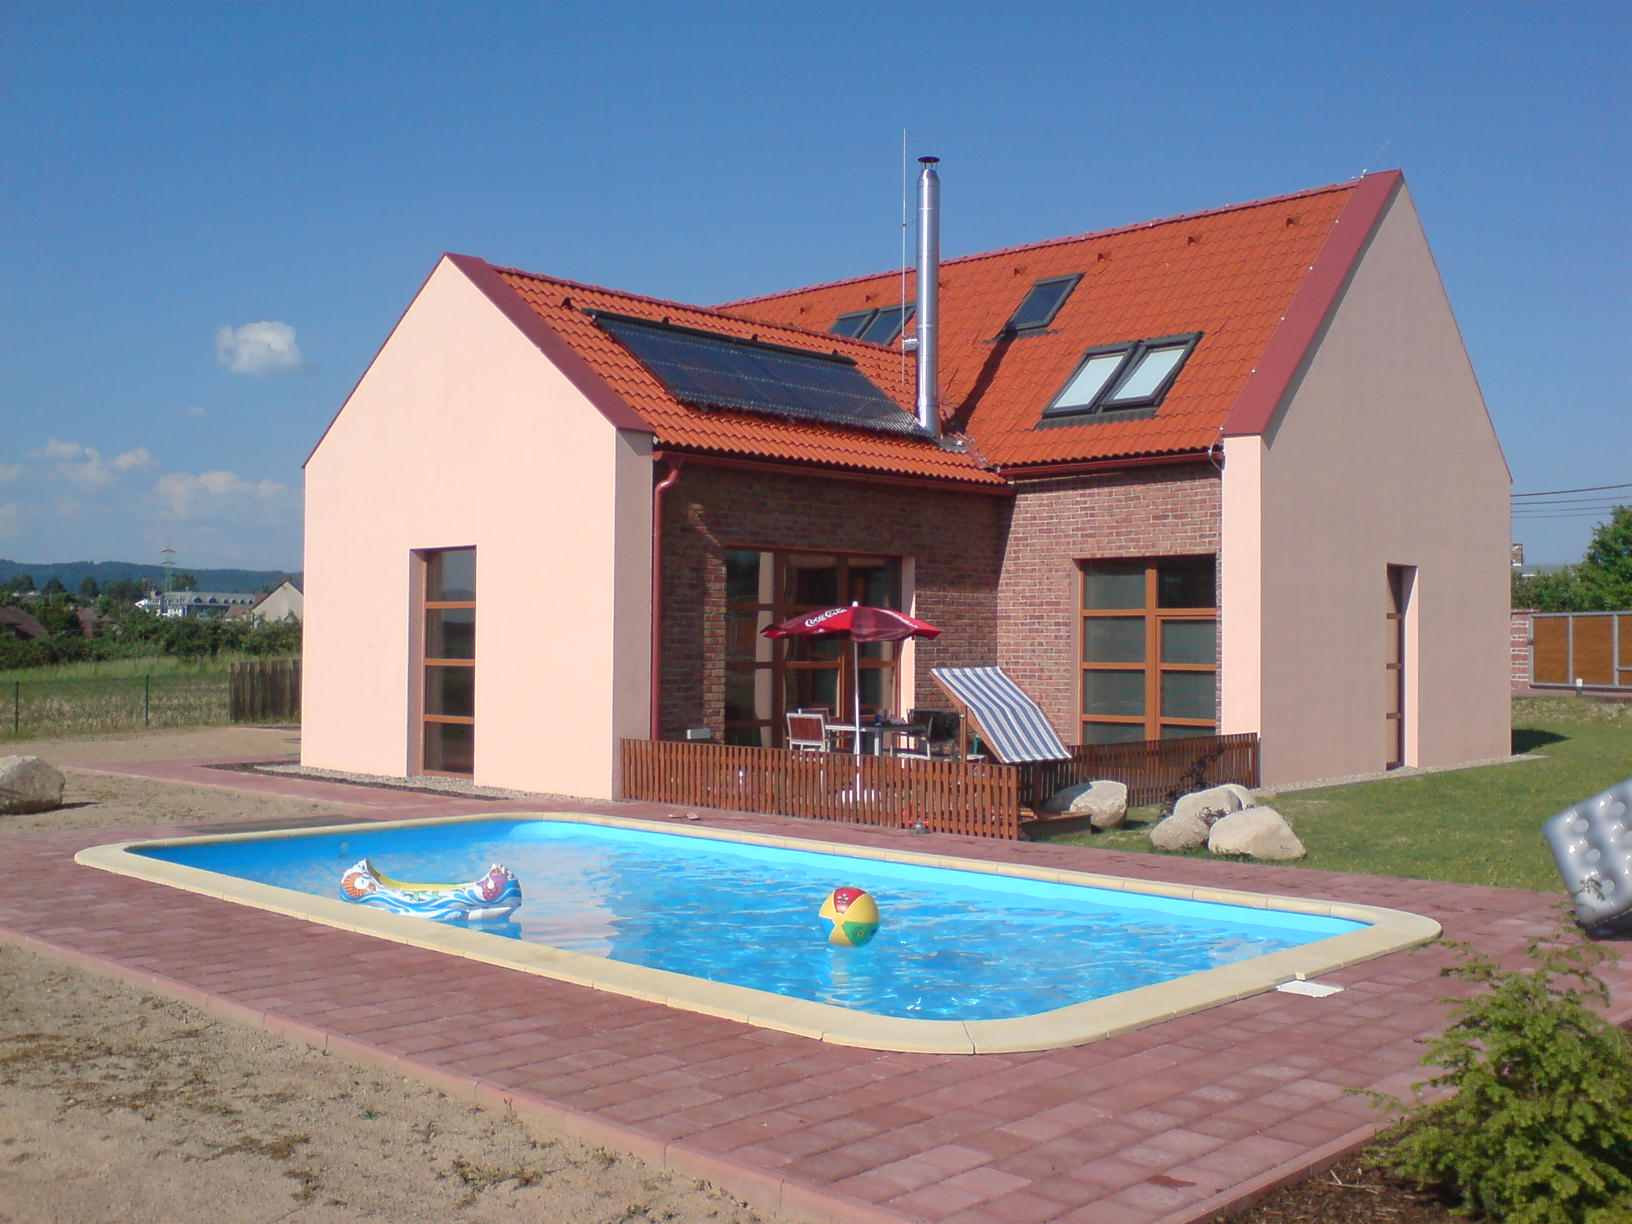 Pools and other plastic products